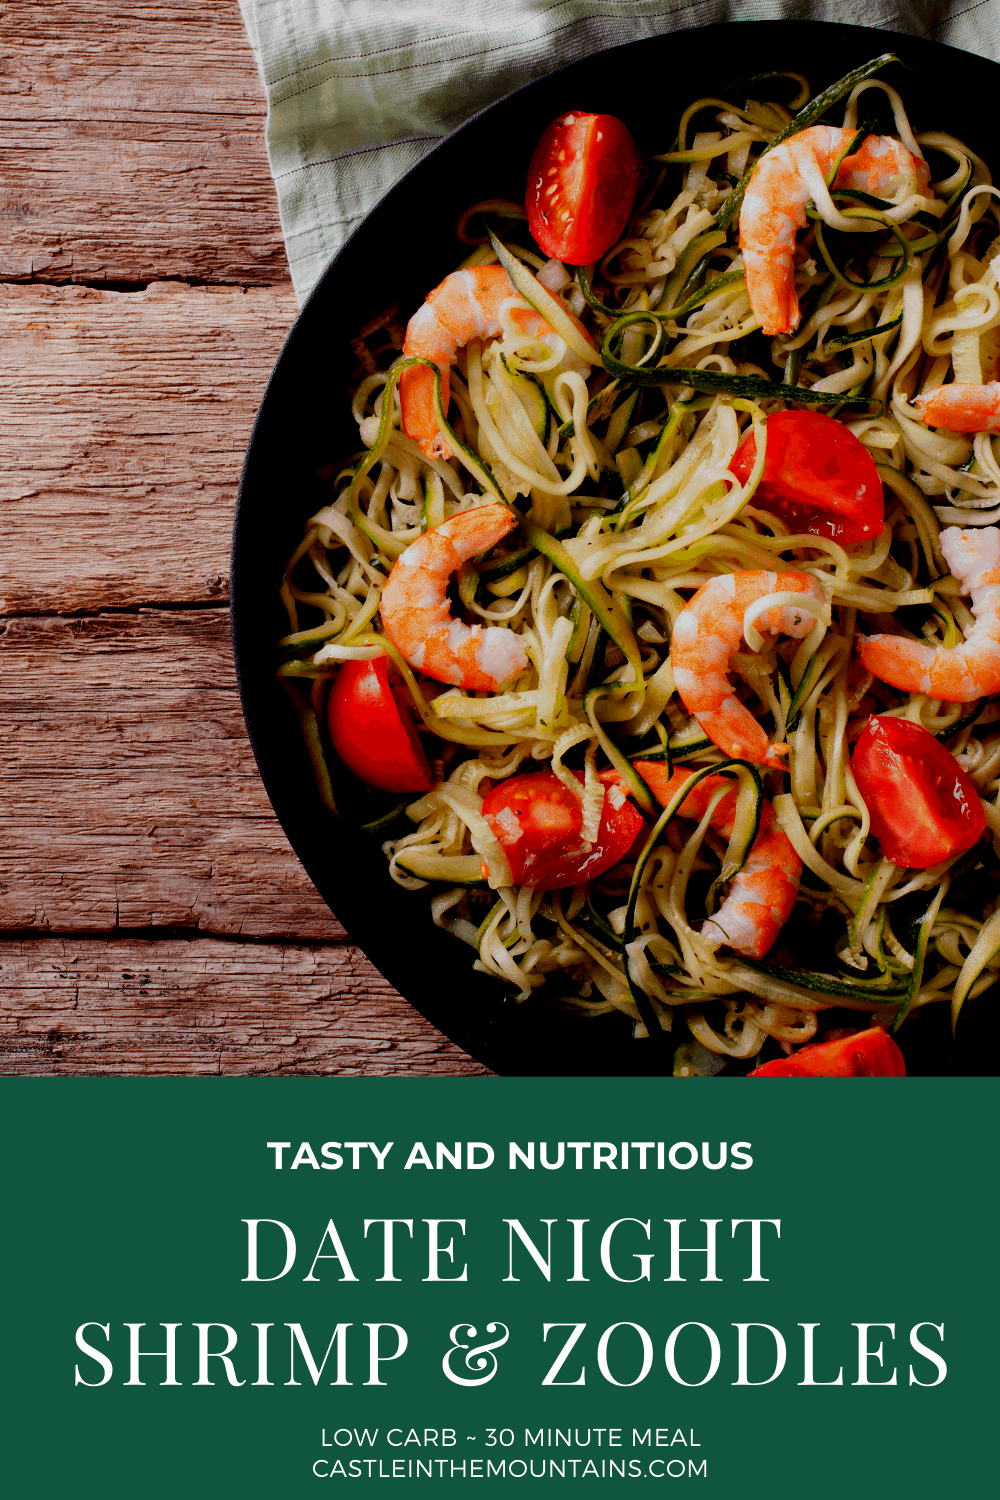 Date Night Savory Shrimp and Zoodles